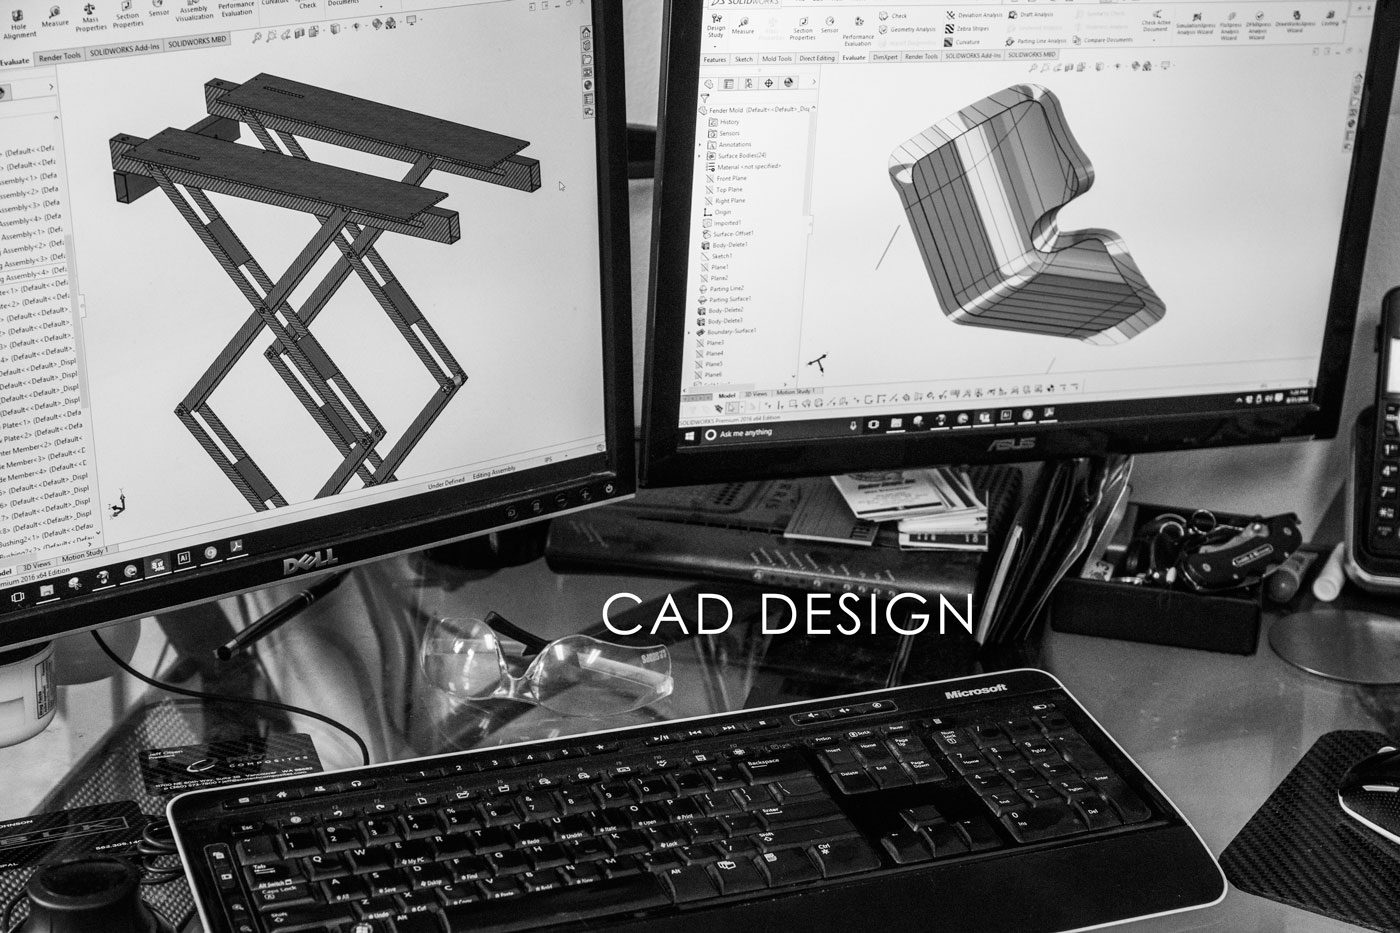 CAD Modeling - We use SolidWorks 2016 to model every part we make.  Come to us with a napkin sketch and we can quickly turn it into reality. CAD modeling starts at $50 per hour.